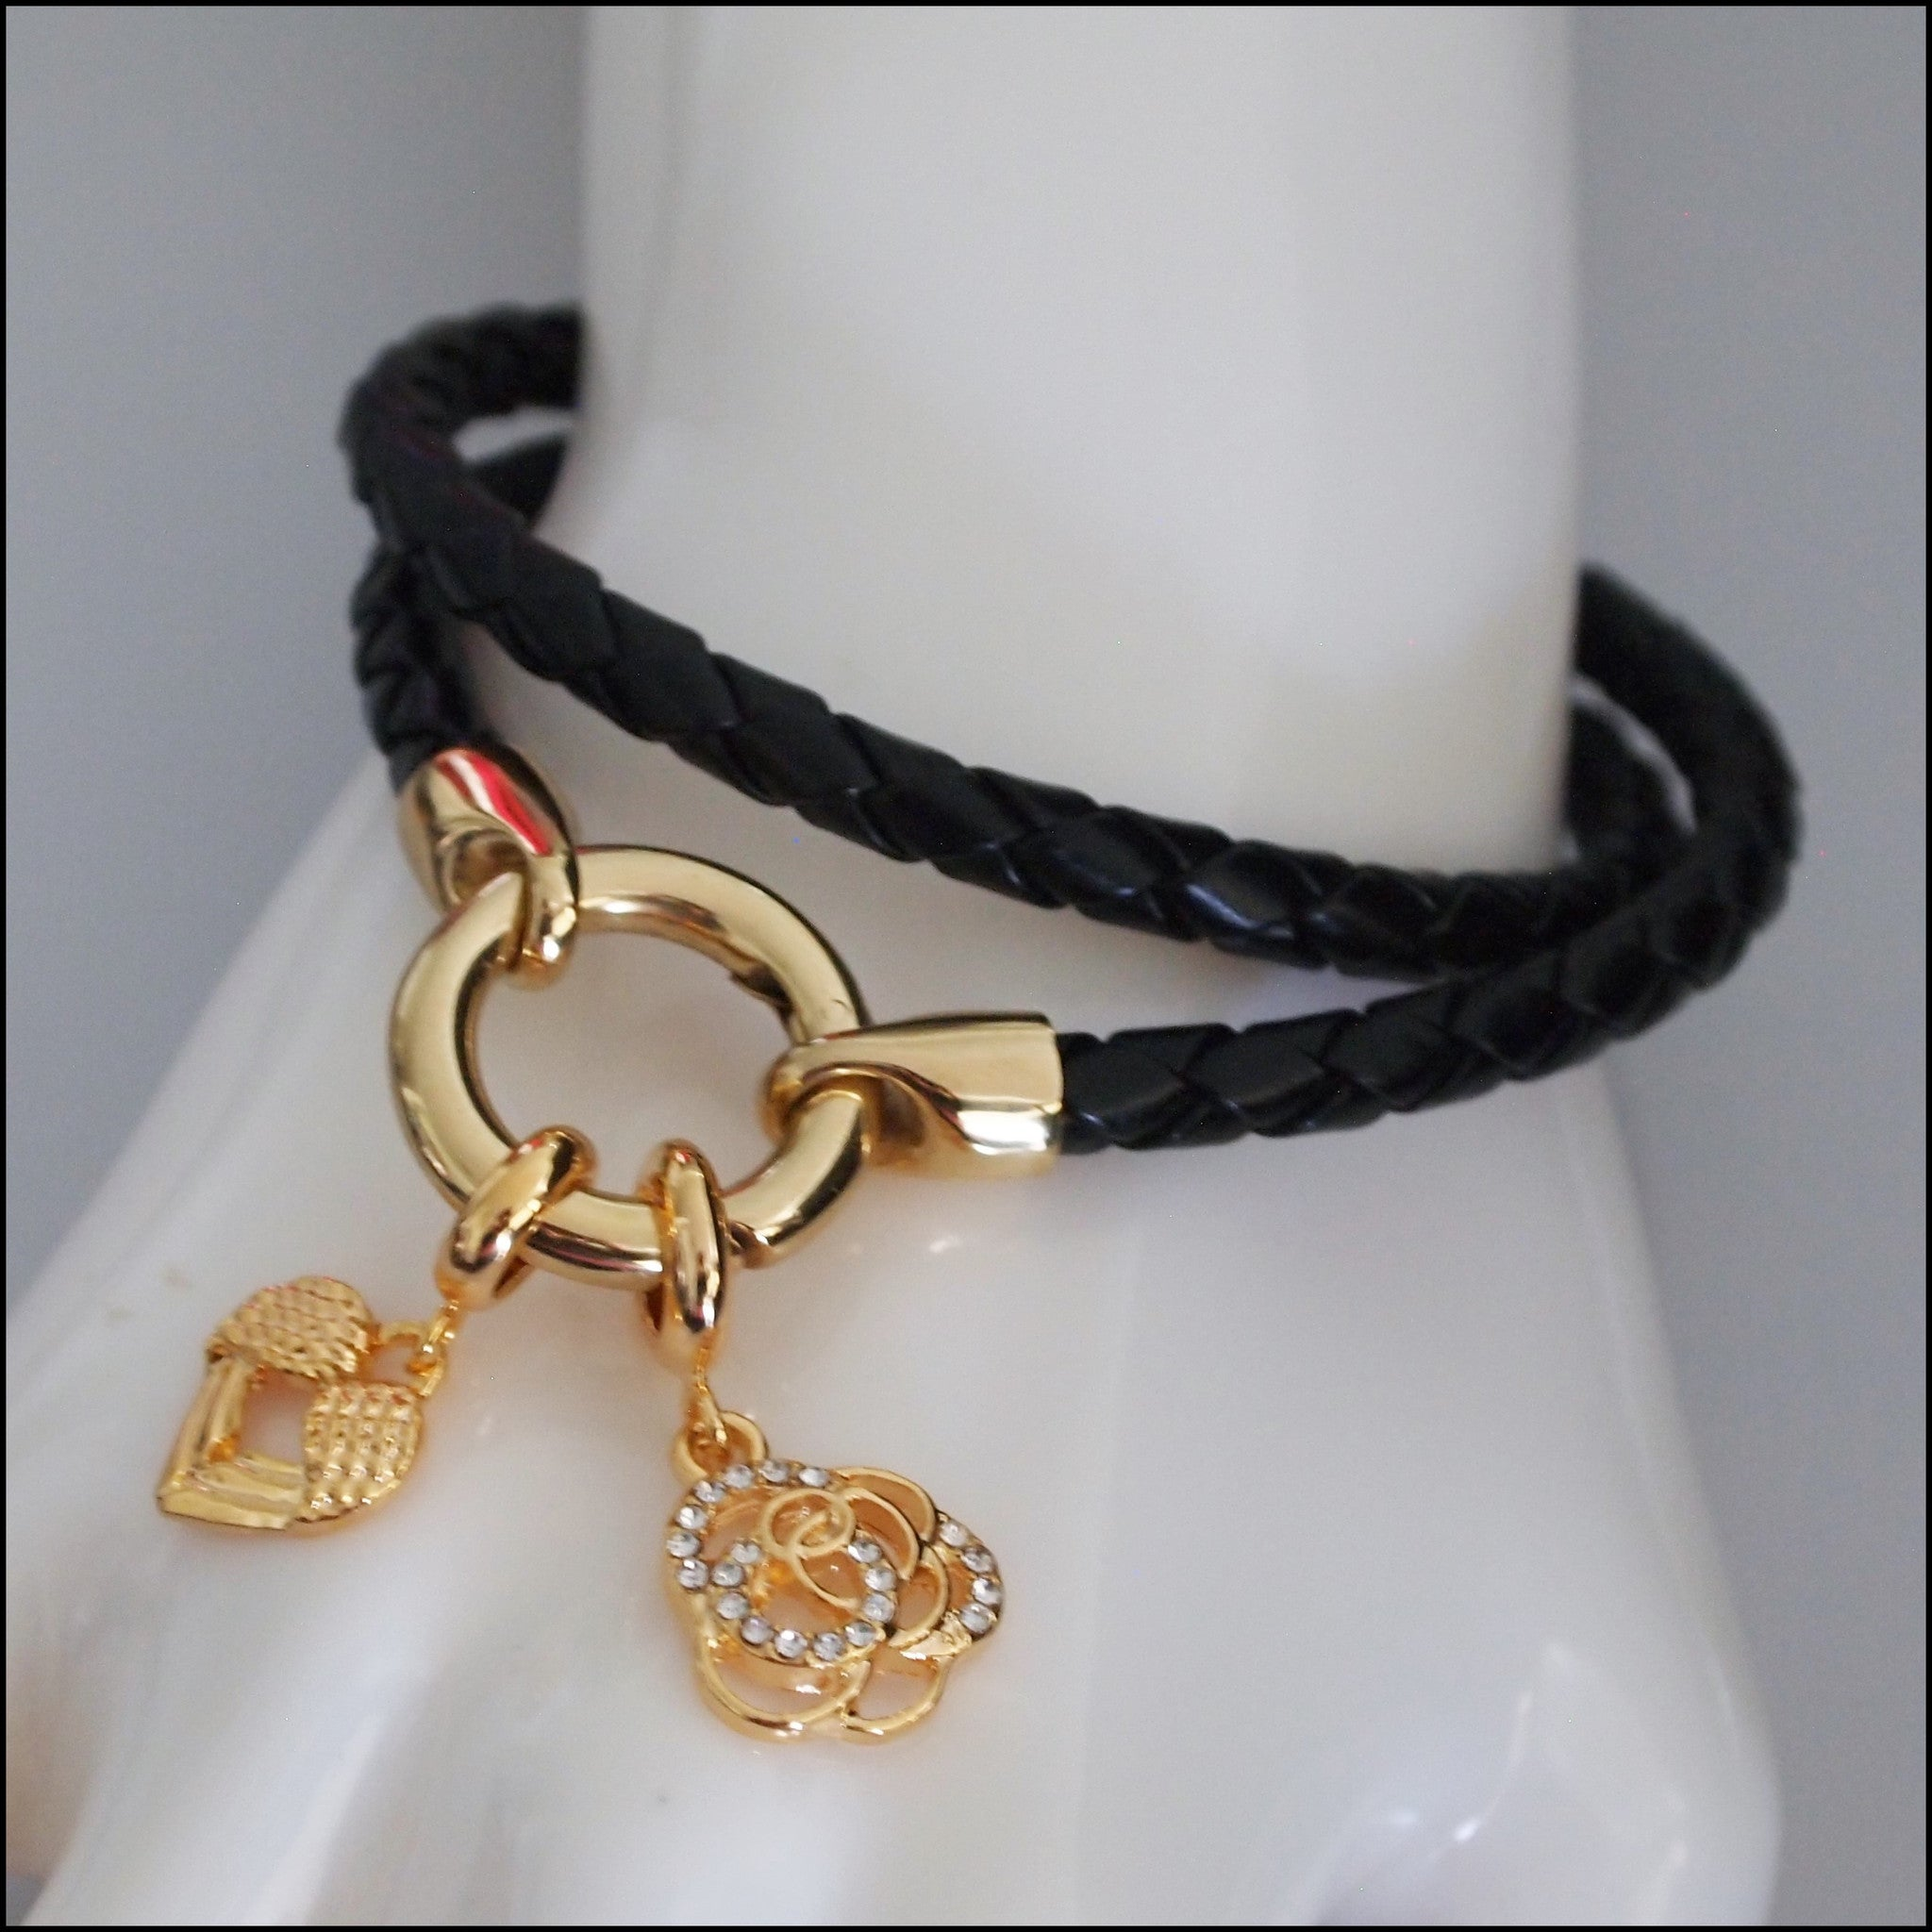 Rolo Leather Bracelet with Charms - Gold Plated - Find Something Special - 1